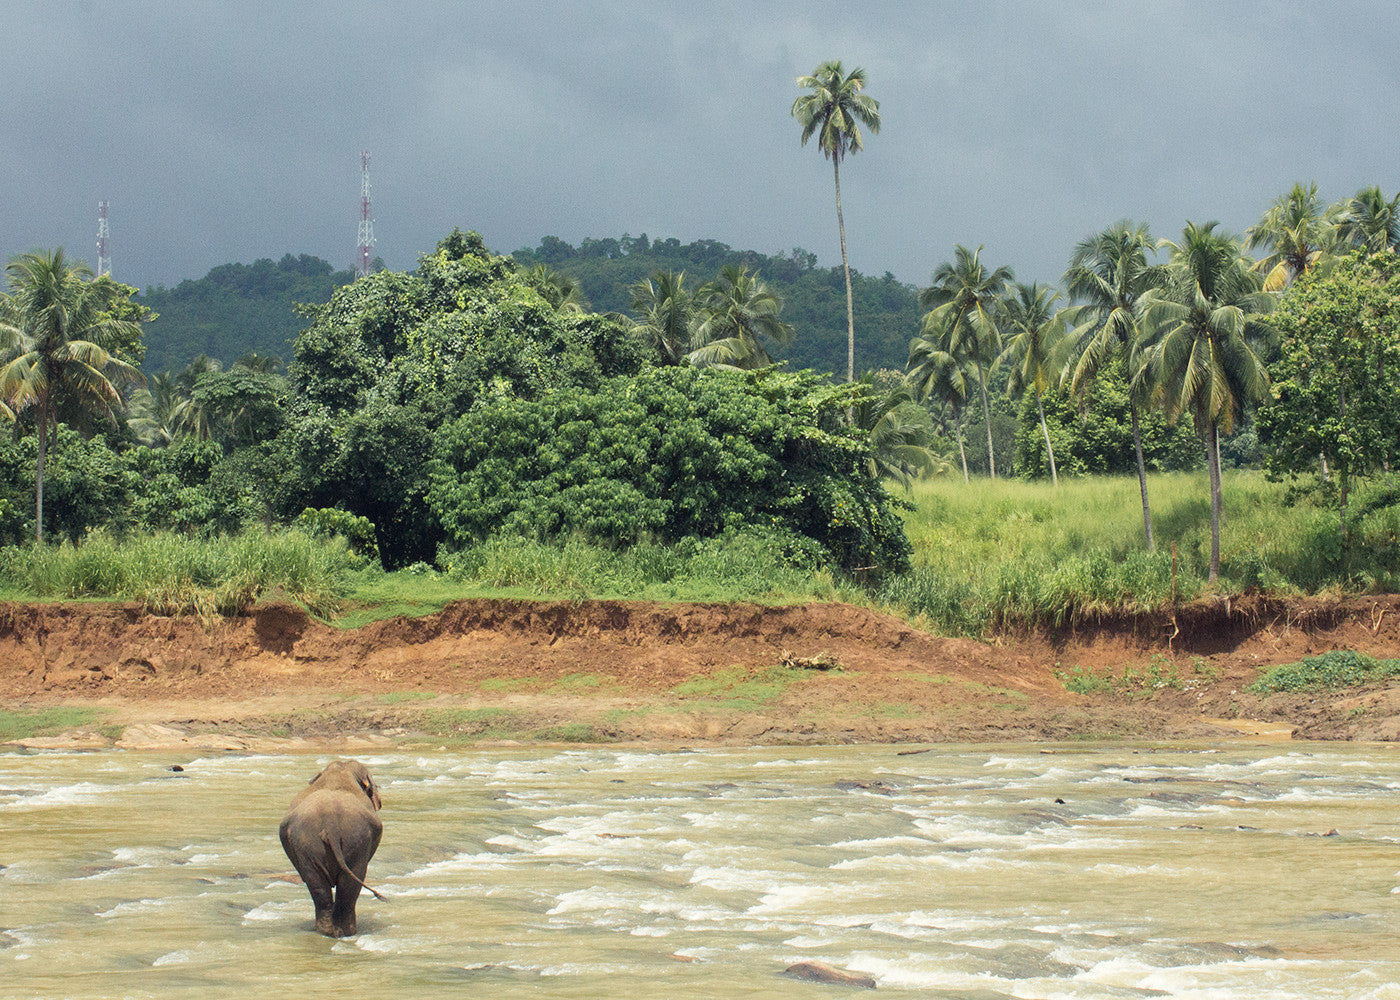 A pregnant elephant meditates in the river